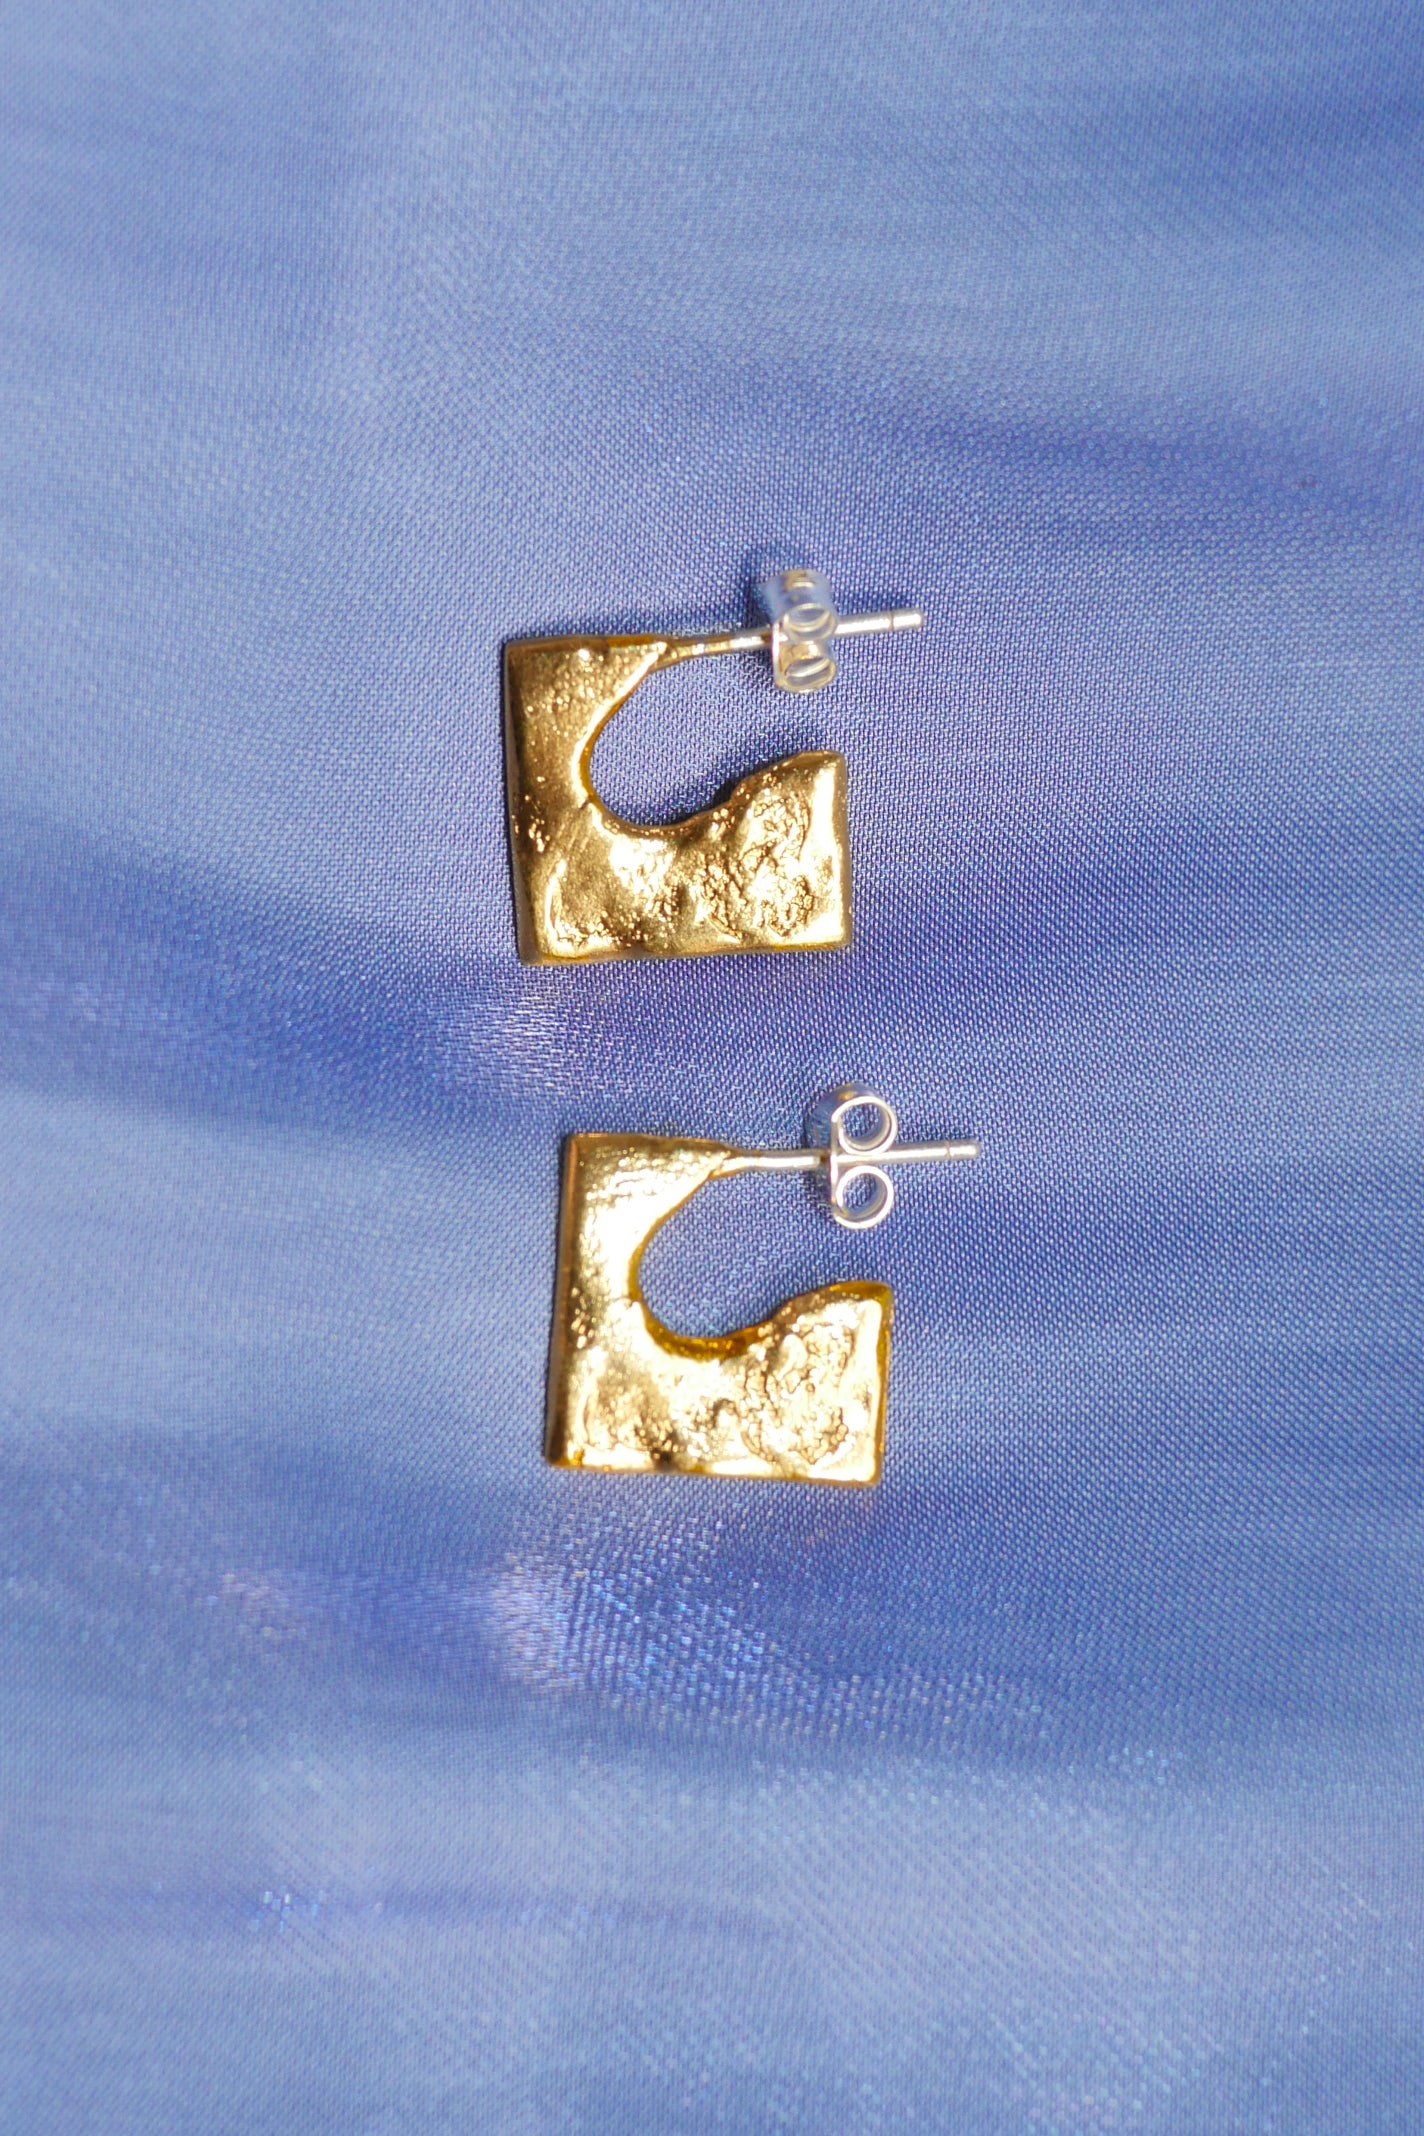 MINI SQUARE STUDS IN GOLD/SILVER - Par Ici